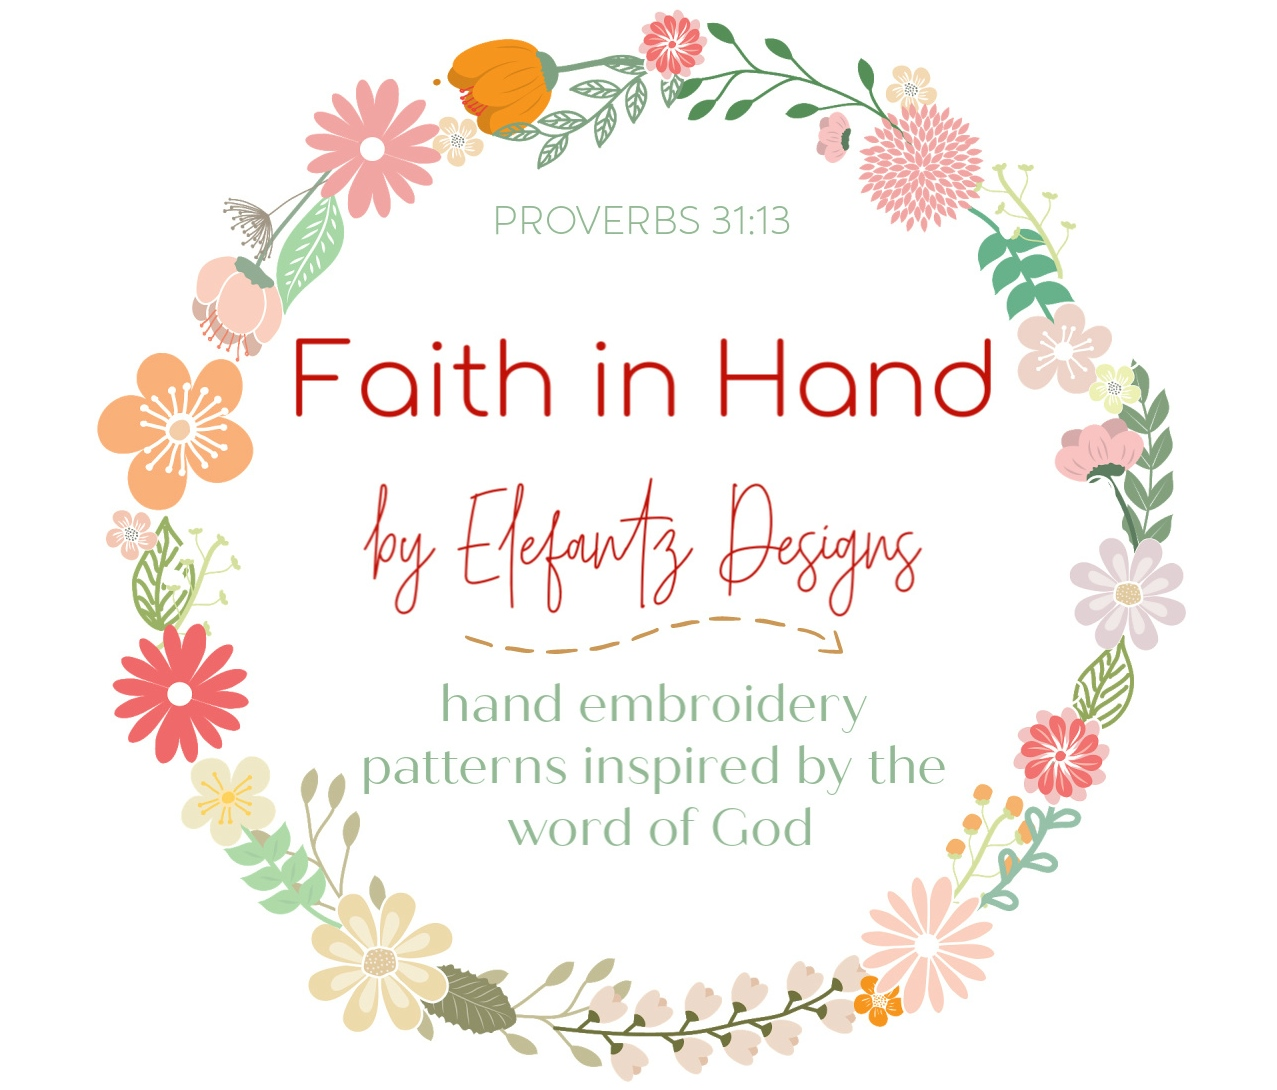 Faith in Hand